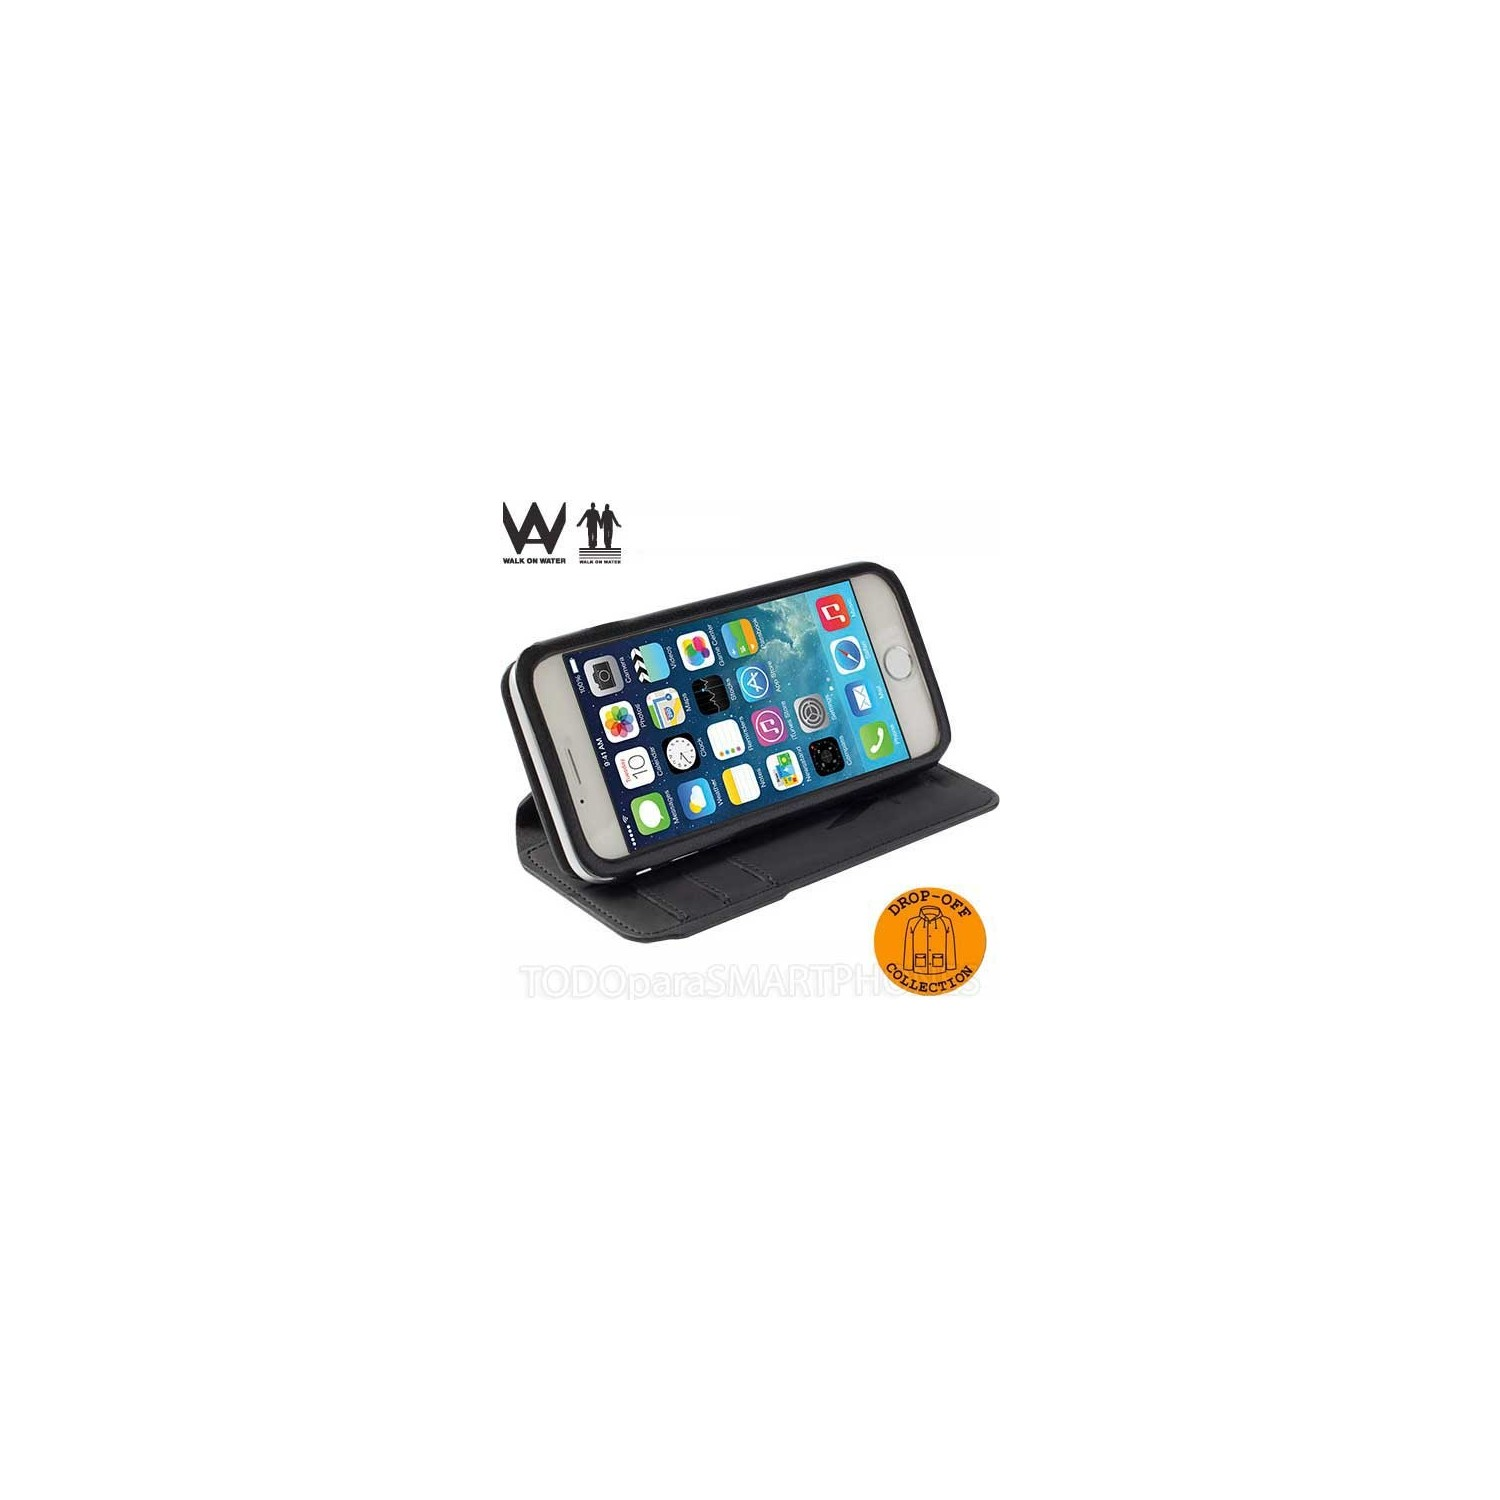 Case - Walk on Water Drop Off Carry Stand Case for iPhone 6 - Black